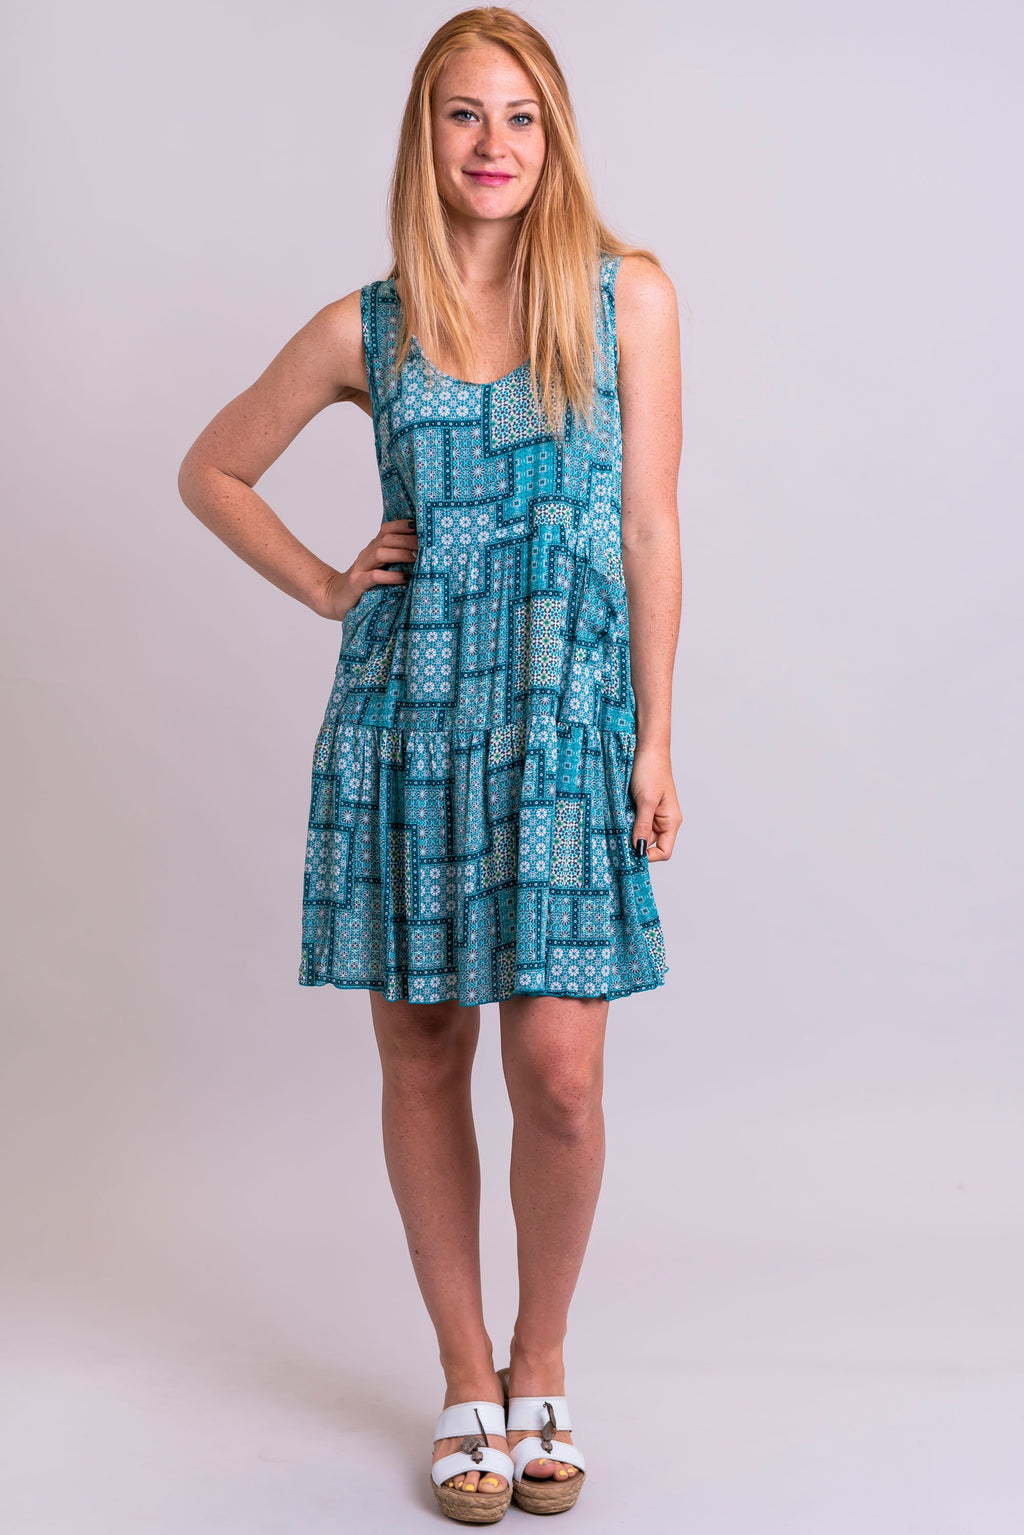 Kaya Dress, Teal Patches, Viscose - Blue Sky Clothing Co